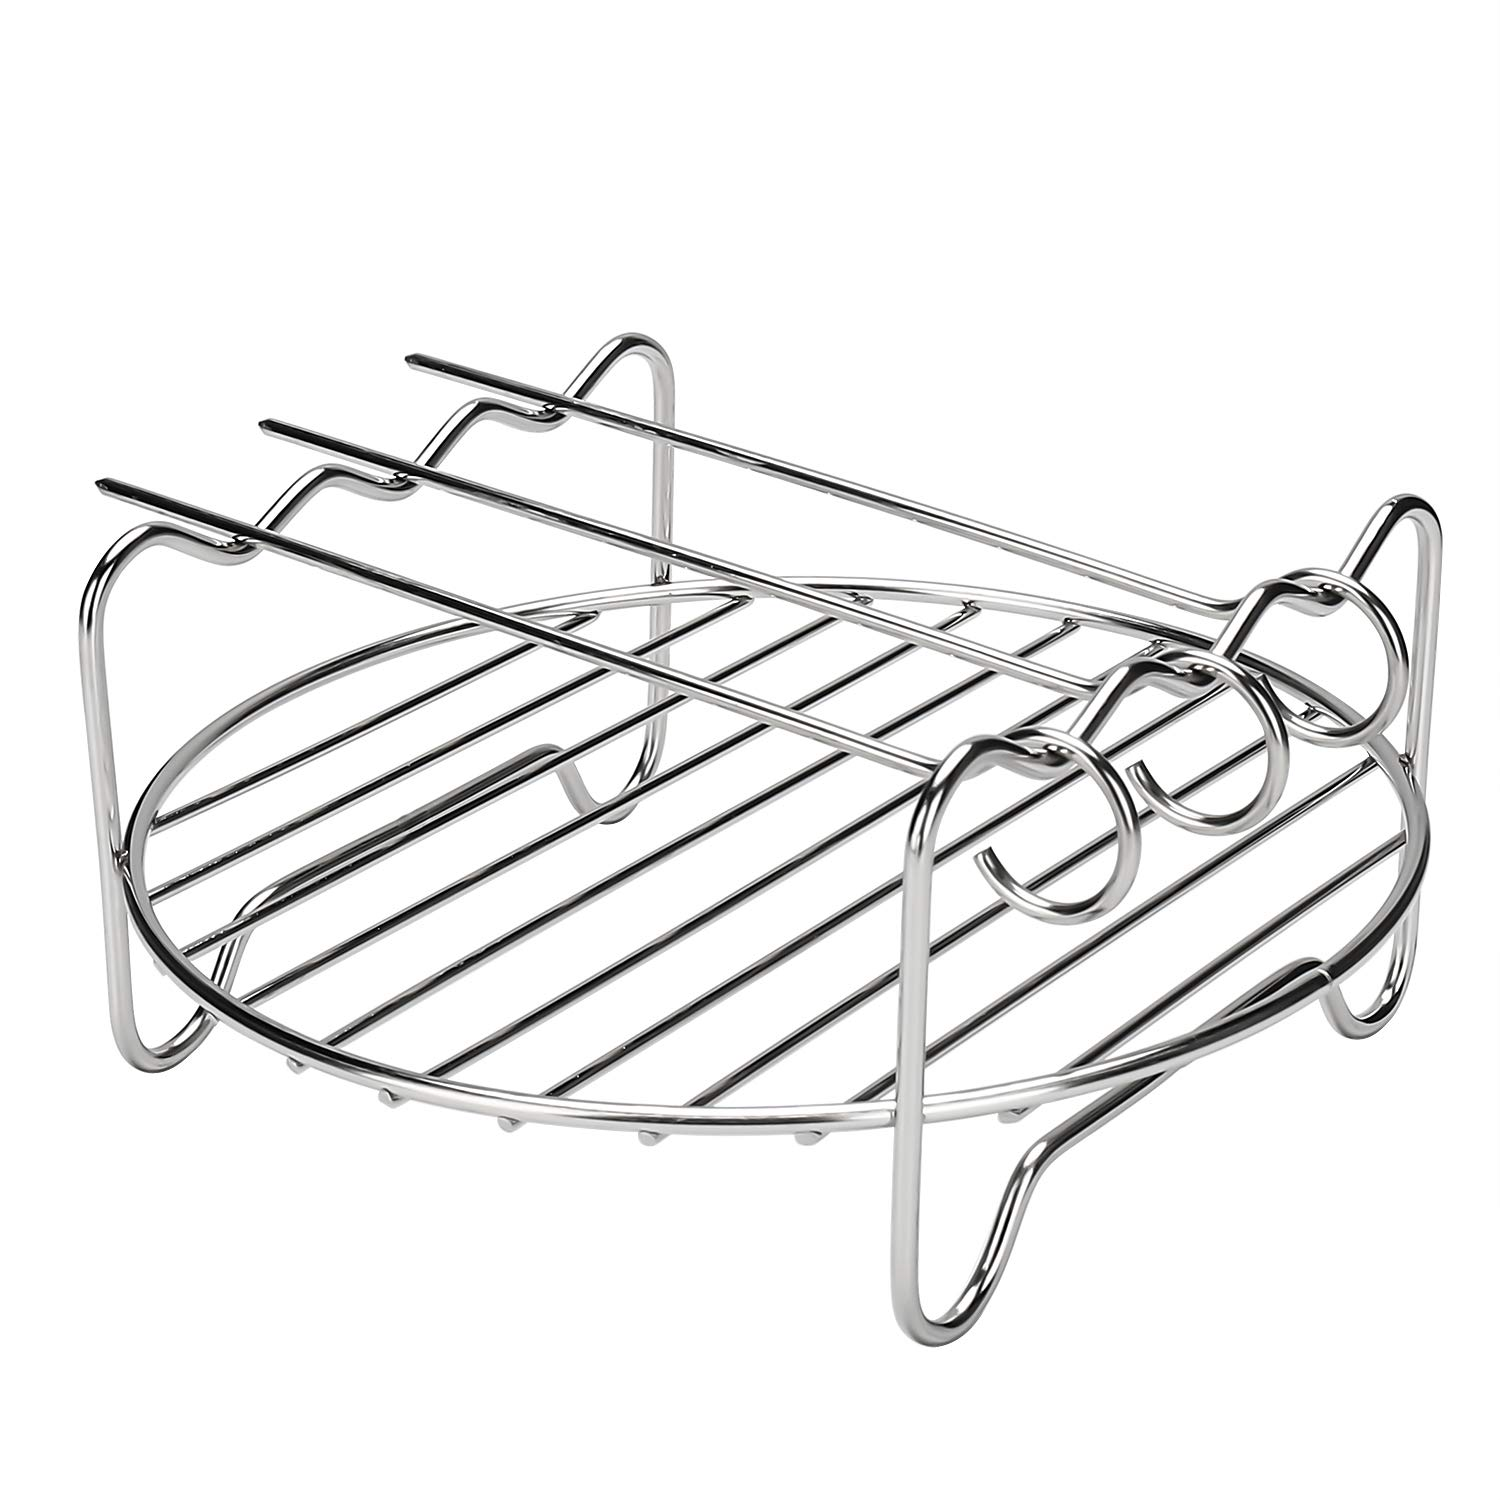 Clikon Air Fryer Accessories 304 Stainless Steel Multi-purpose Double Layer Rack with Skewer Air Fryer Rack Compatible with 2.6-5.8 QT